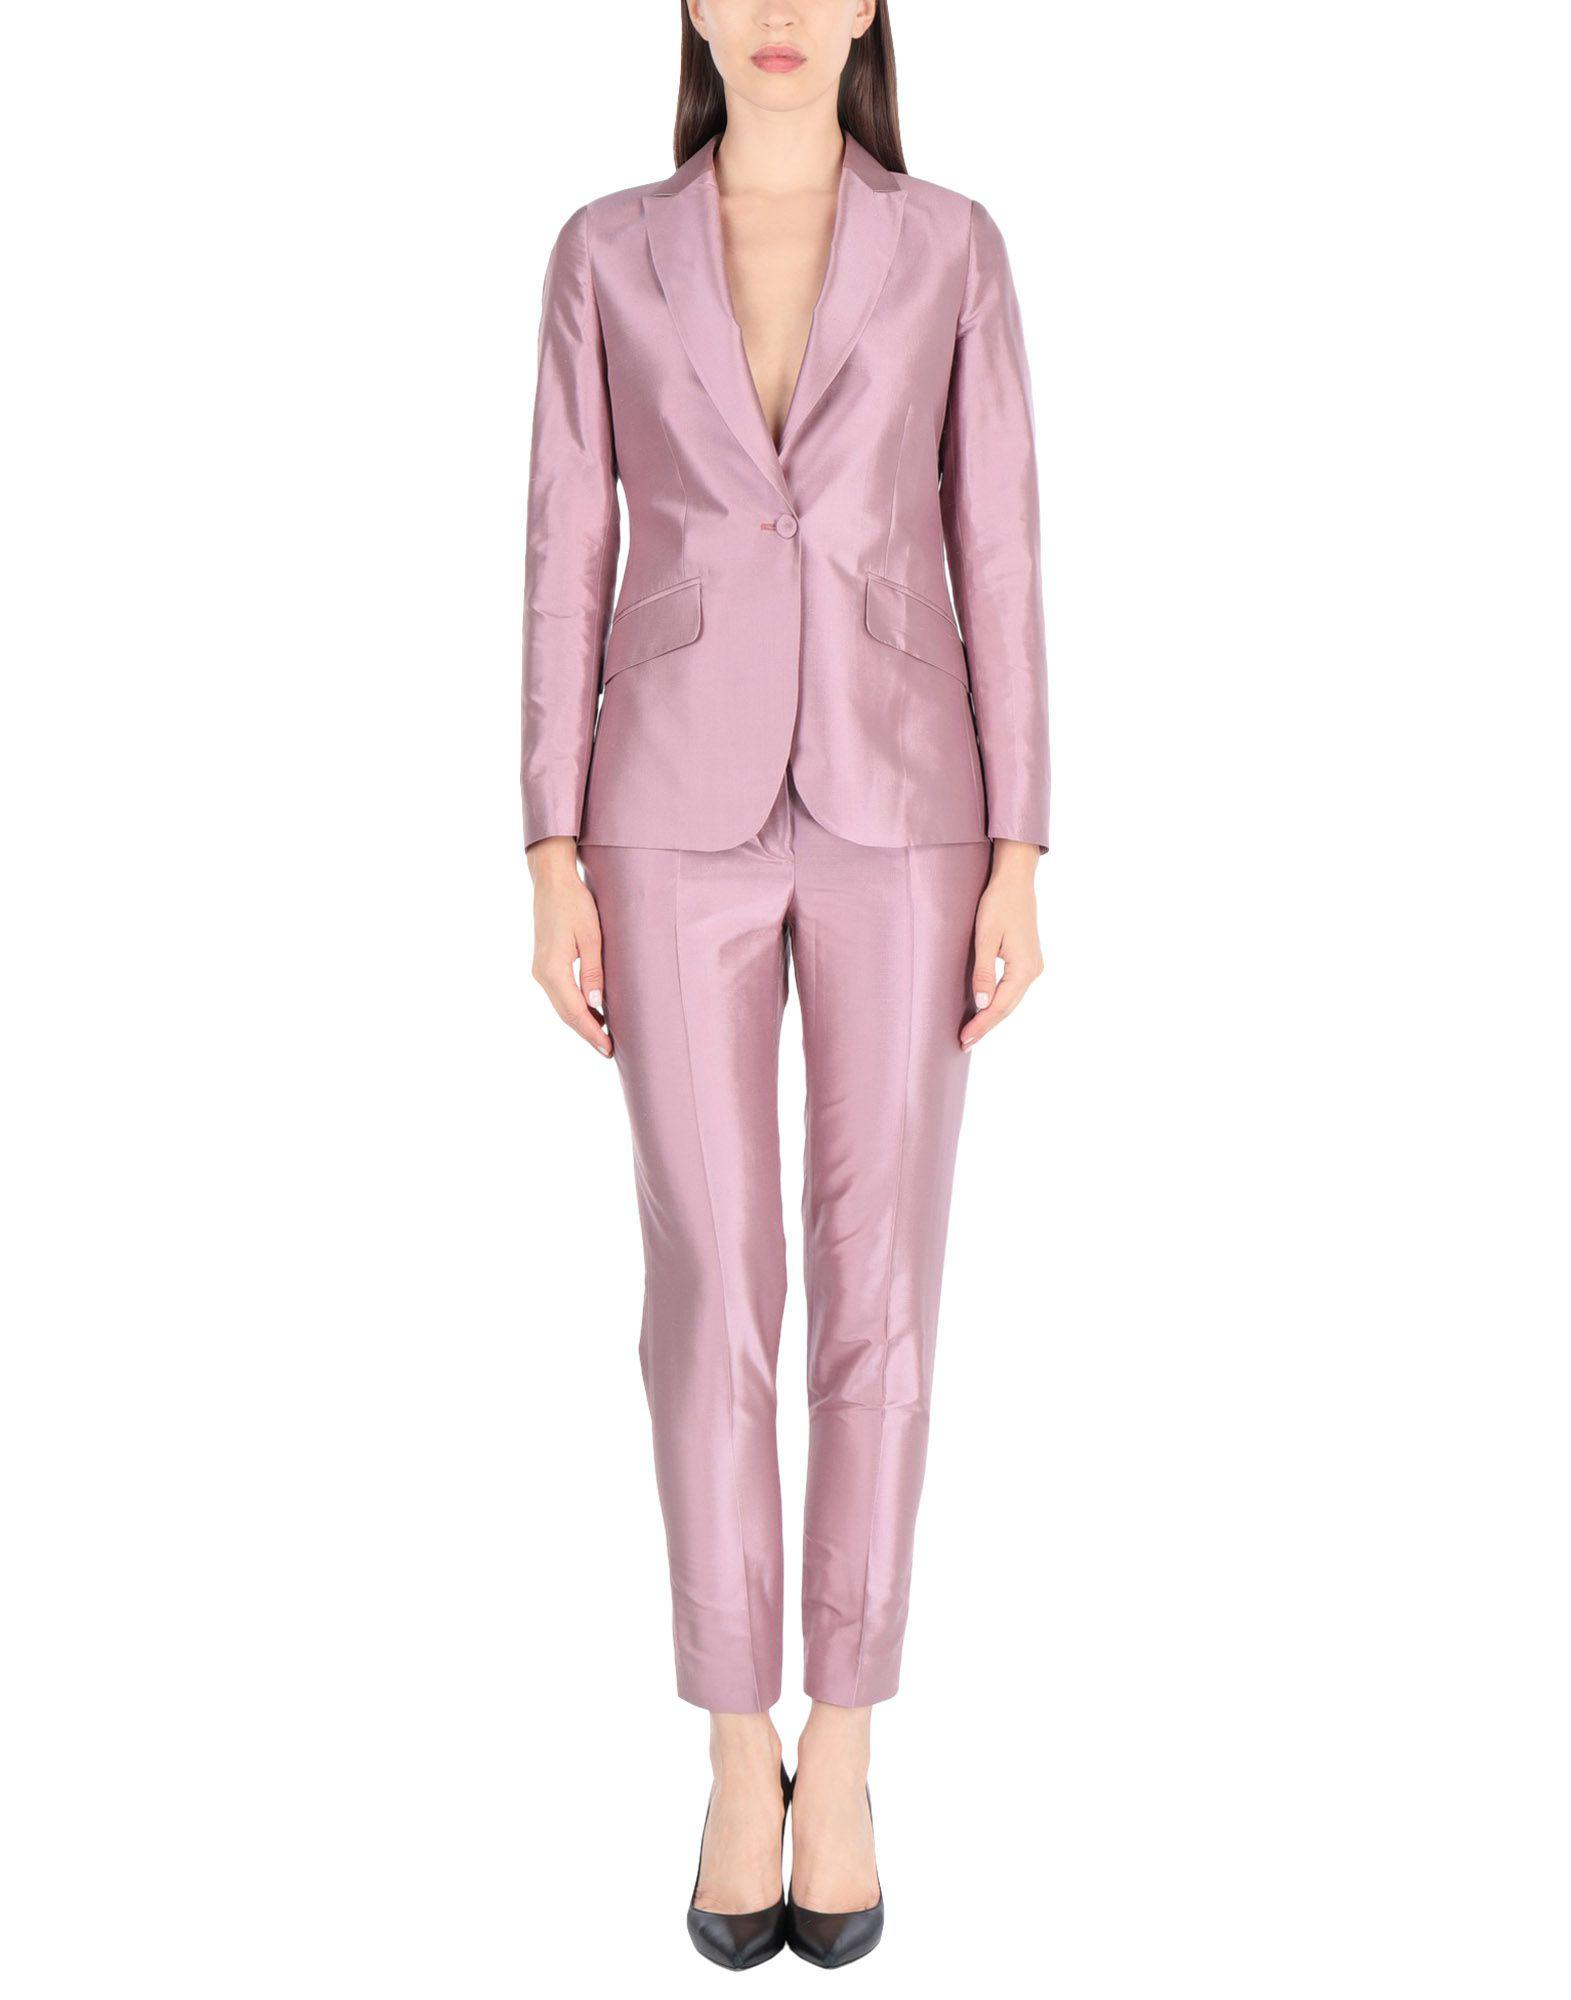 Lyst Brian Dales Women S Suit In Pink